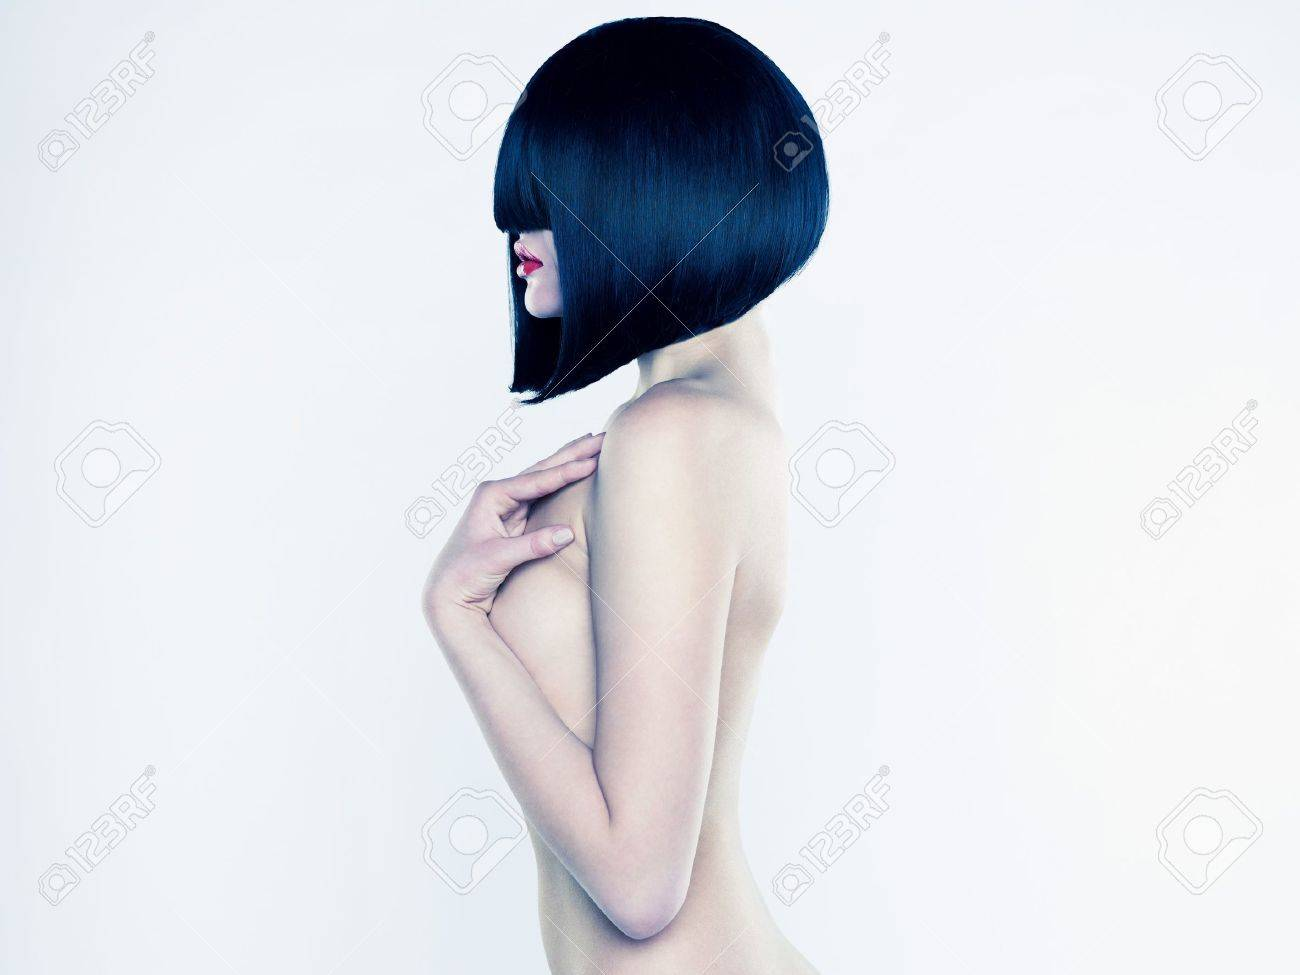 Elegant nude woman with short stylish hairstyle Stock Photo - 12933413